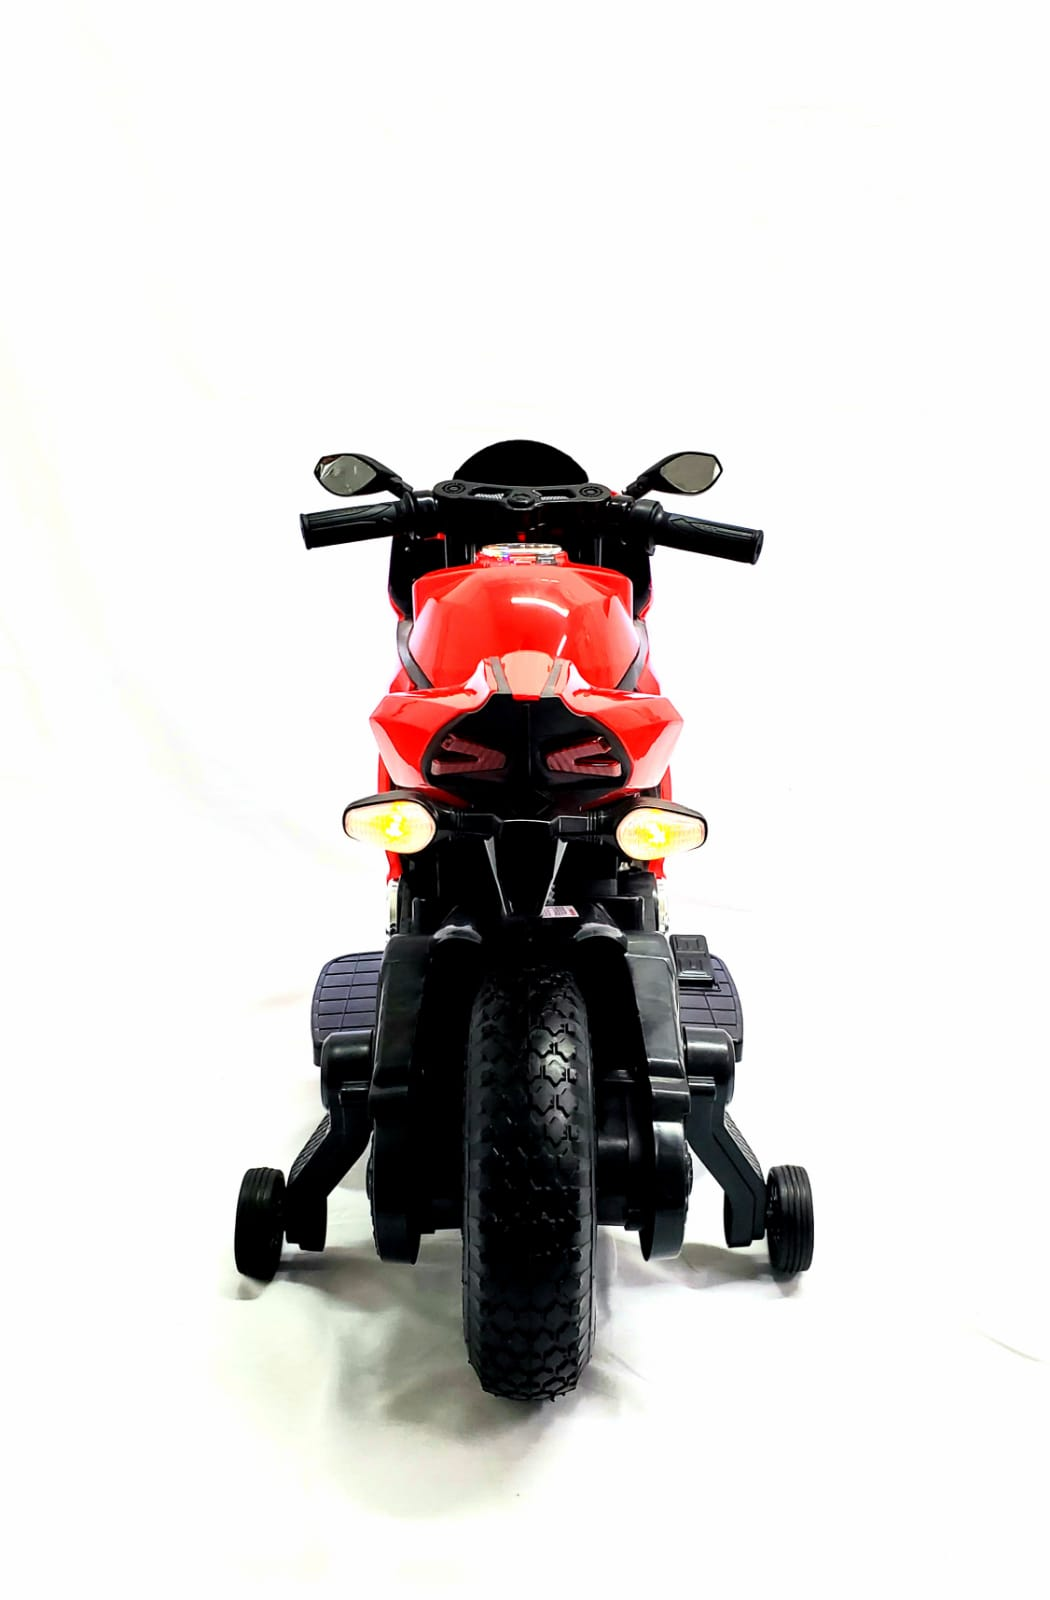 Ducati Style Ride on Motor Bike (Red)